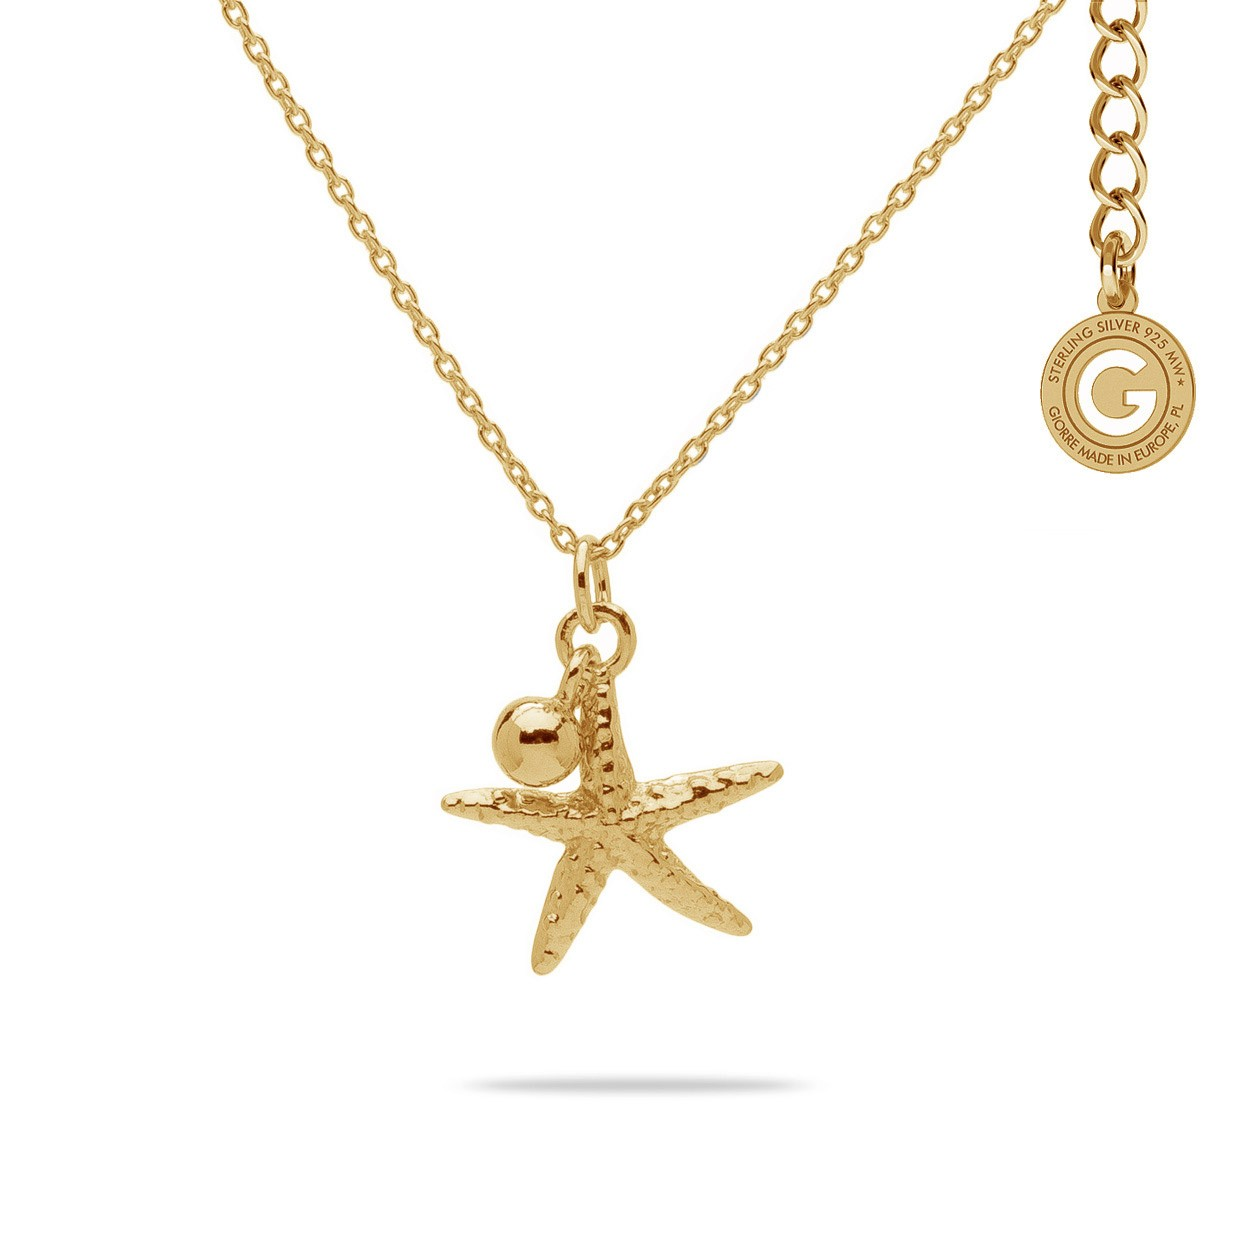 STARFISH NECKLACE STERLING SILVER 925